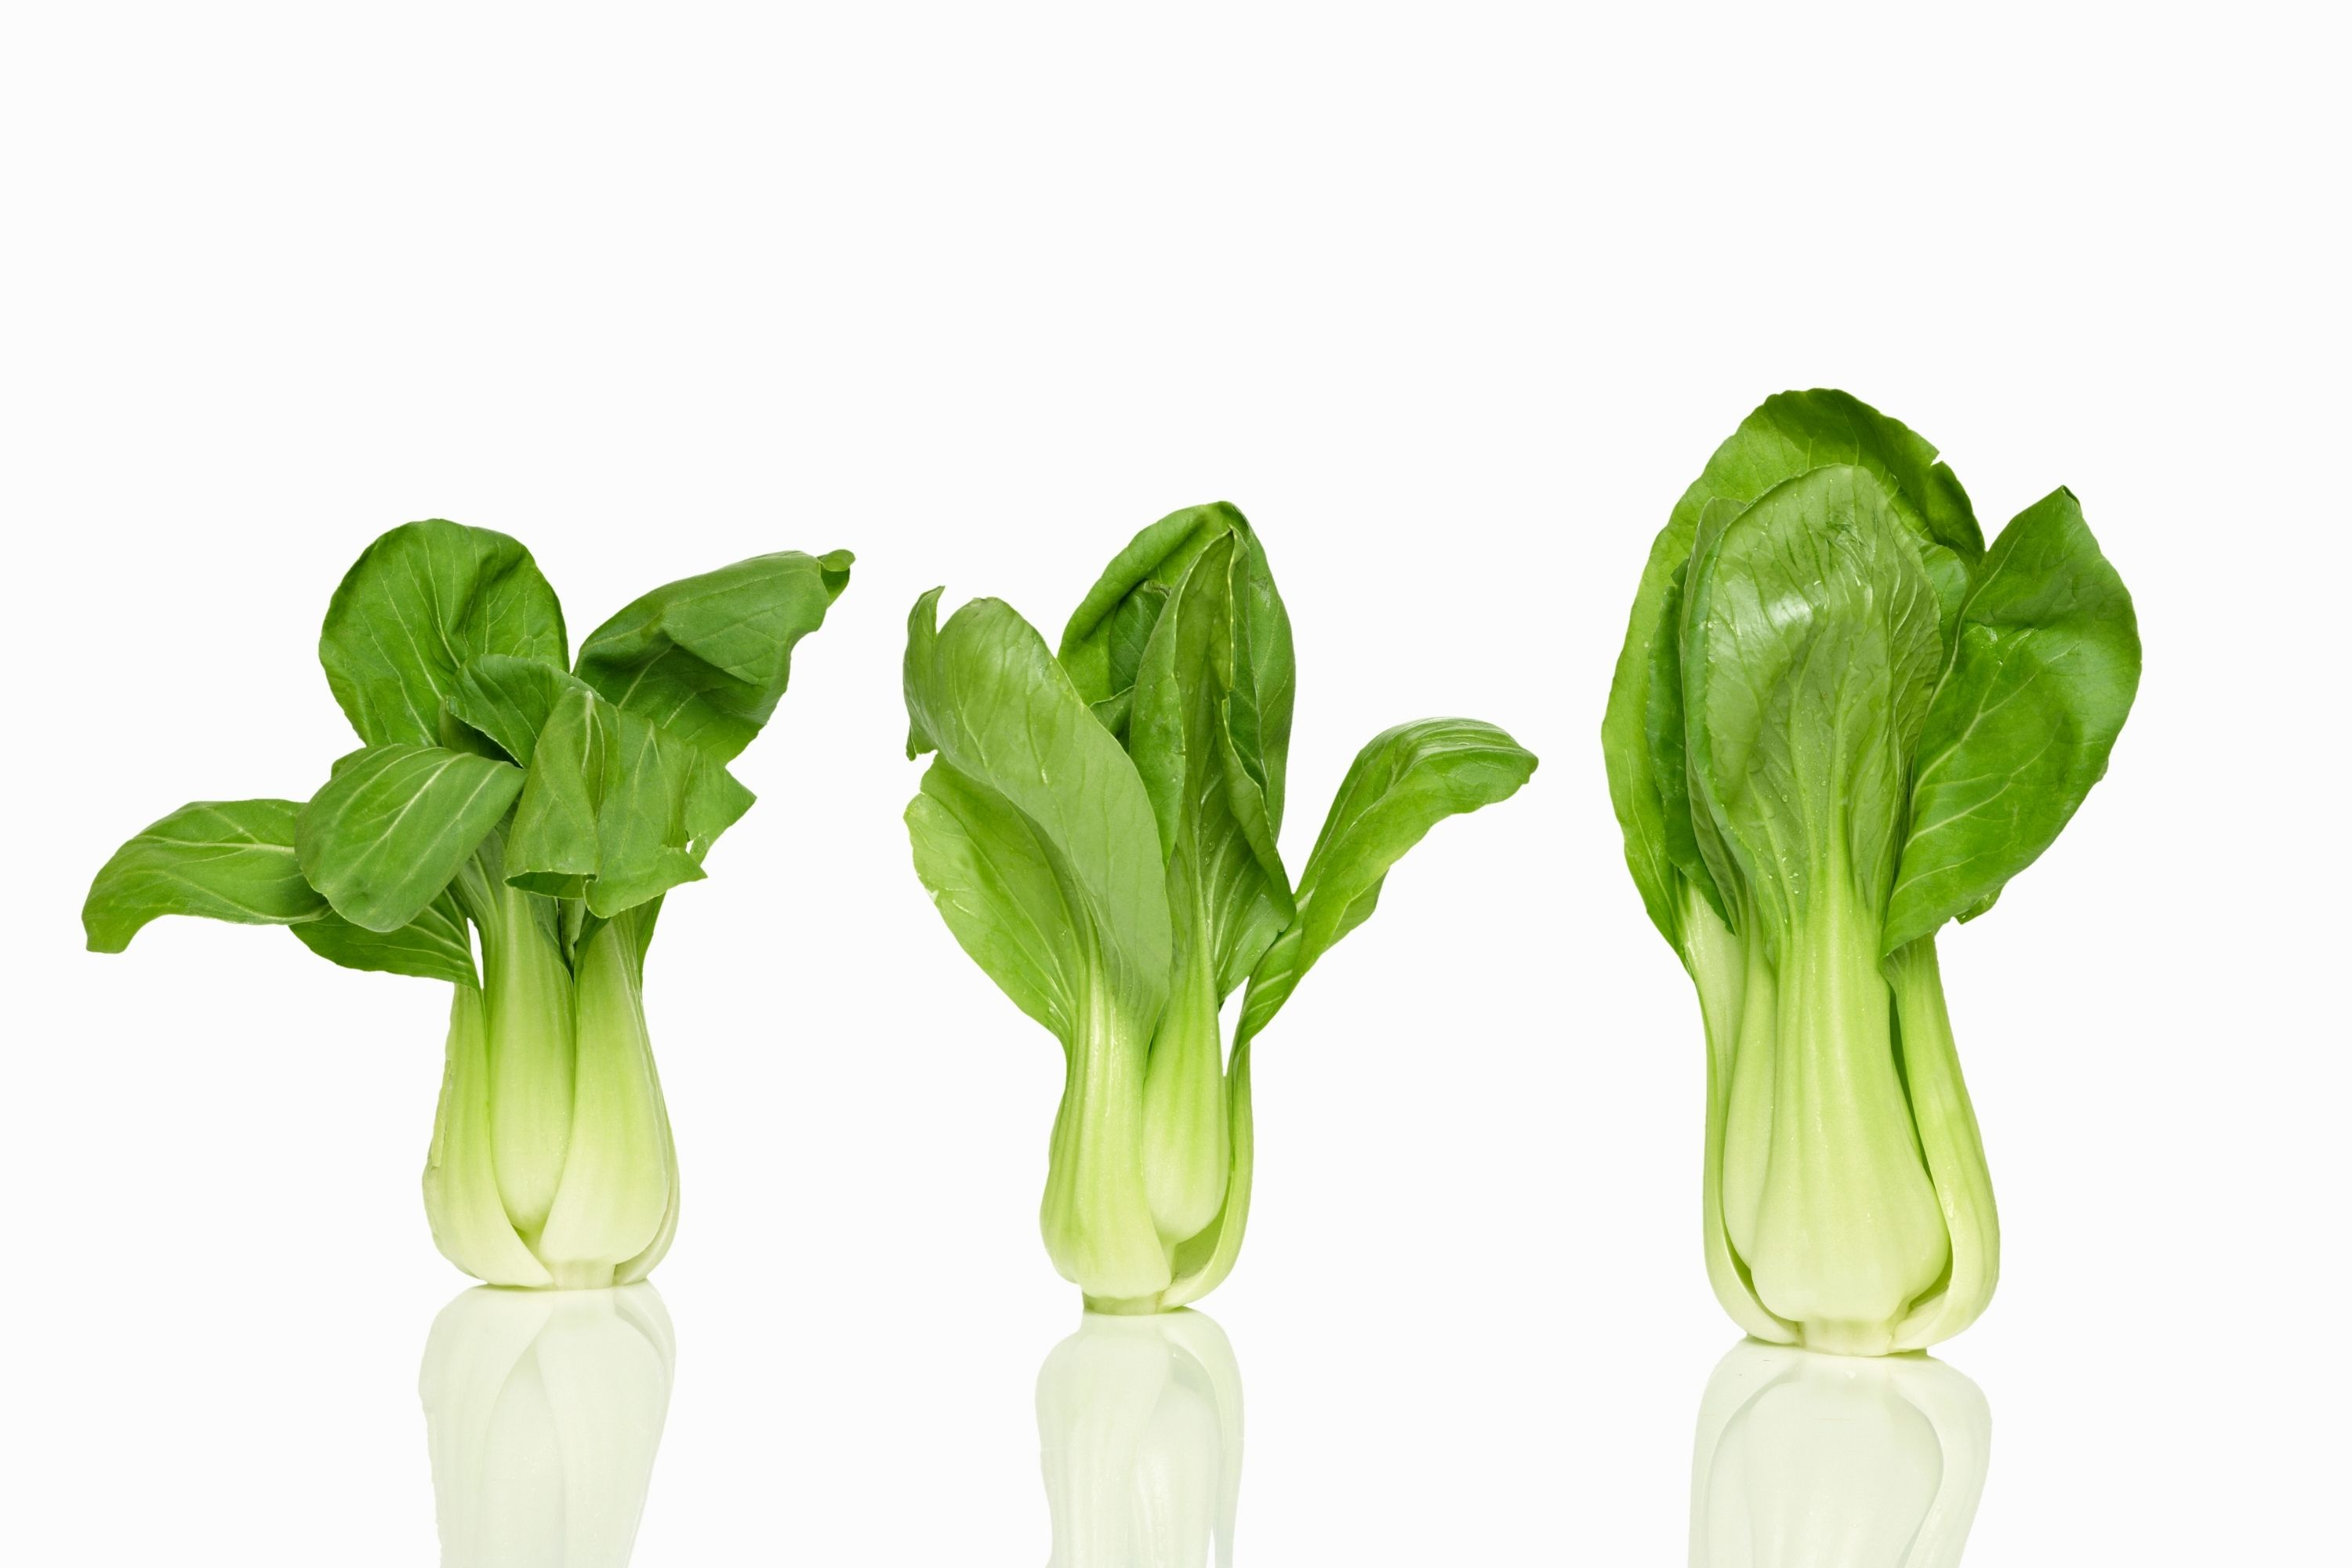 How Do You Store Bok Choy In The Freezer